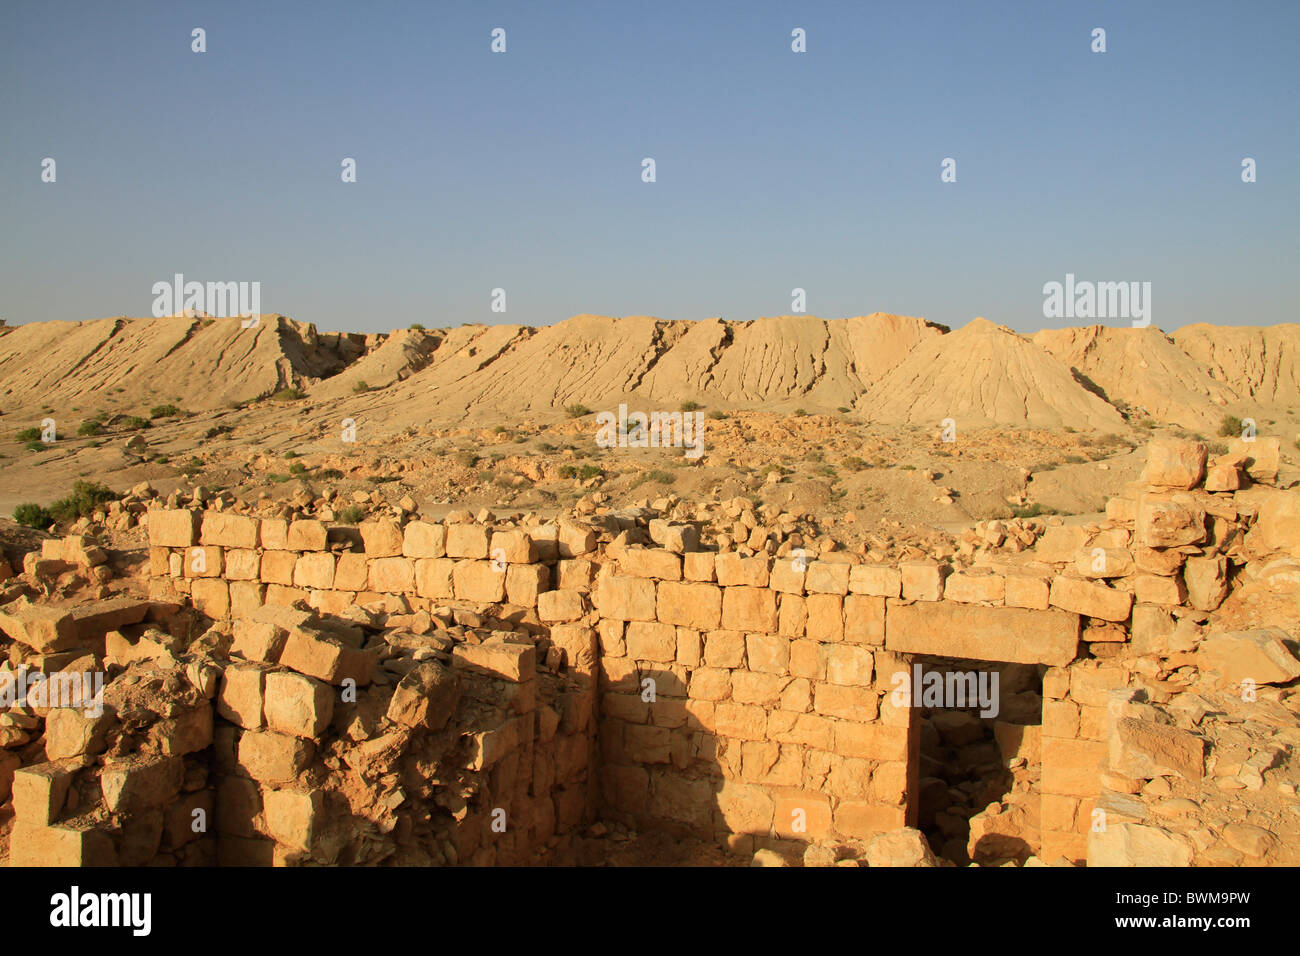 Israel, Tamar stronghold in the Negev - Stock Image